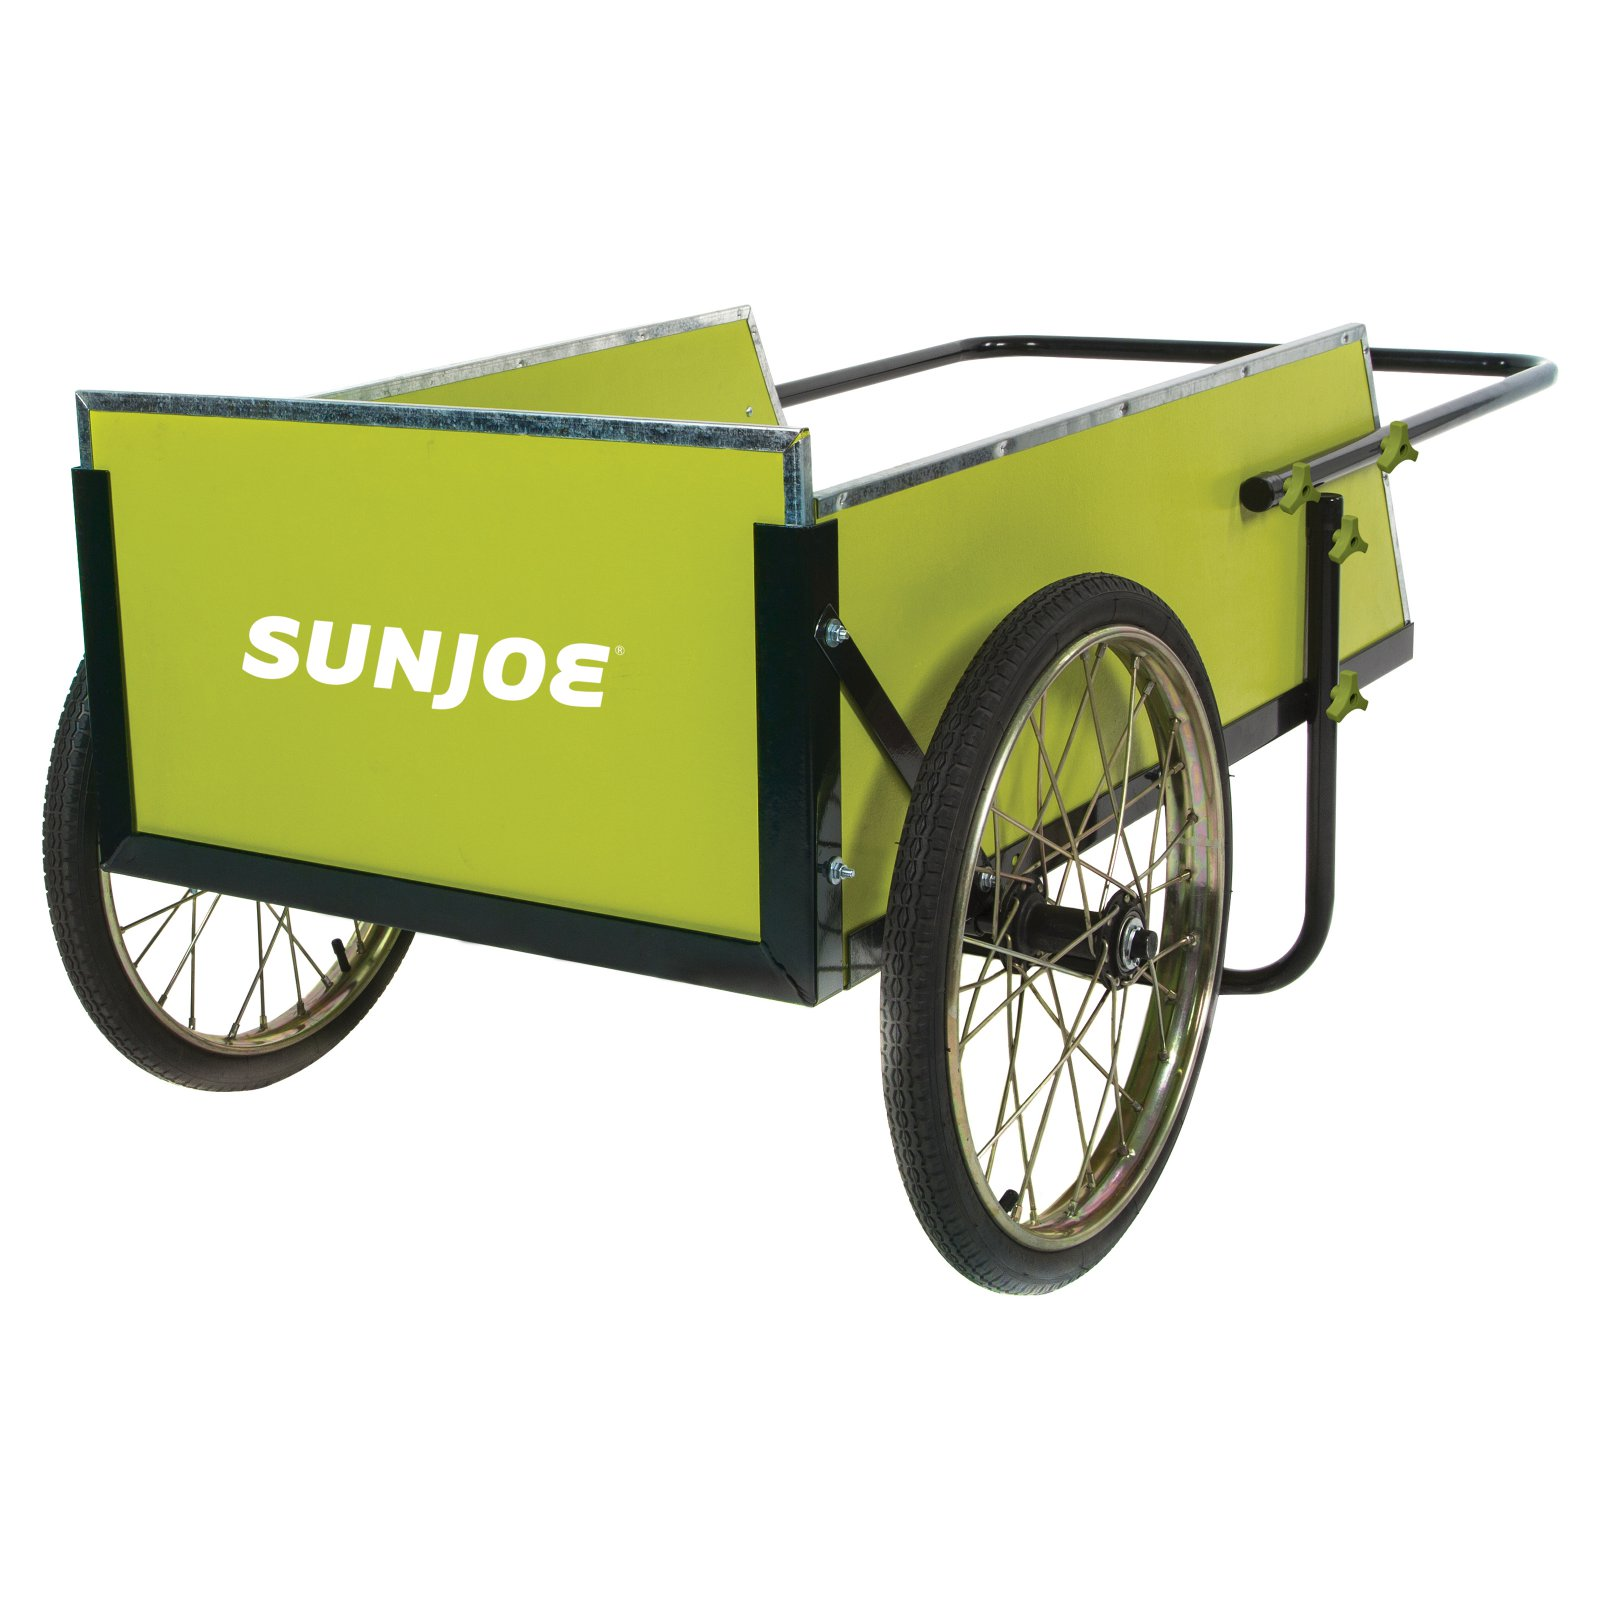 7 Cu. ft. Heavy Duty Garden and Utility Cart in Green and Black